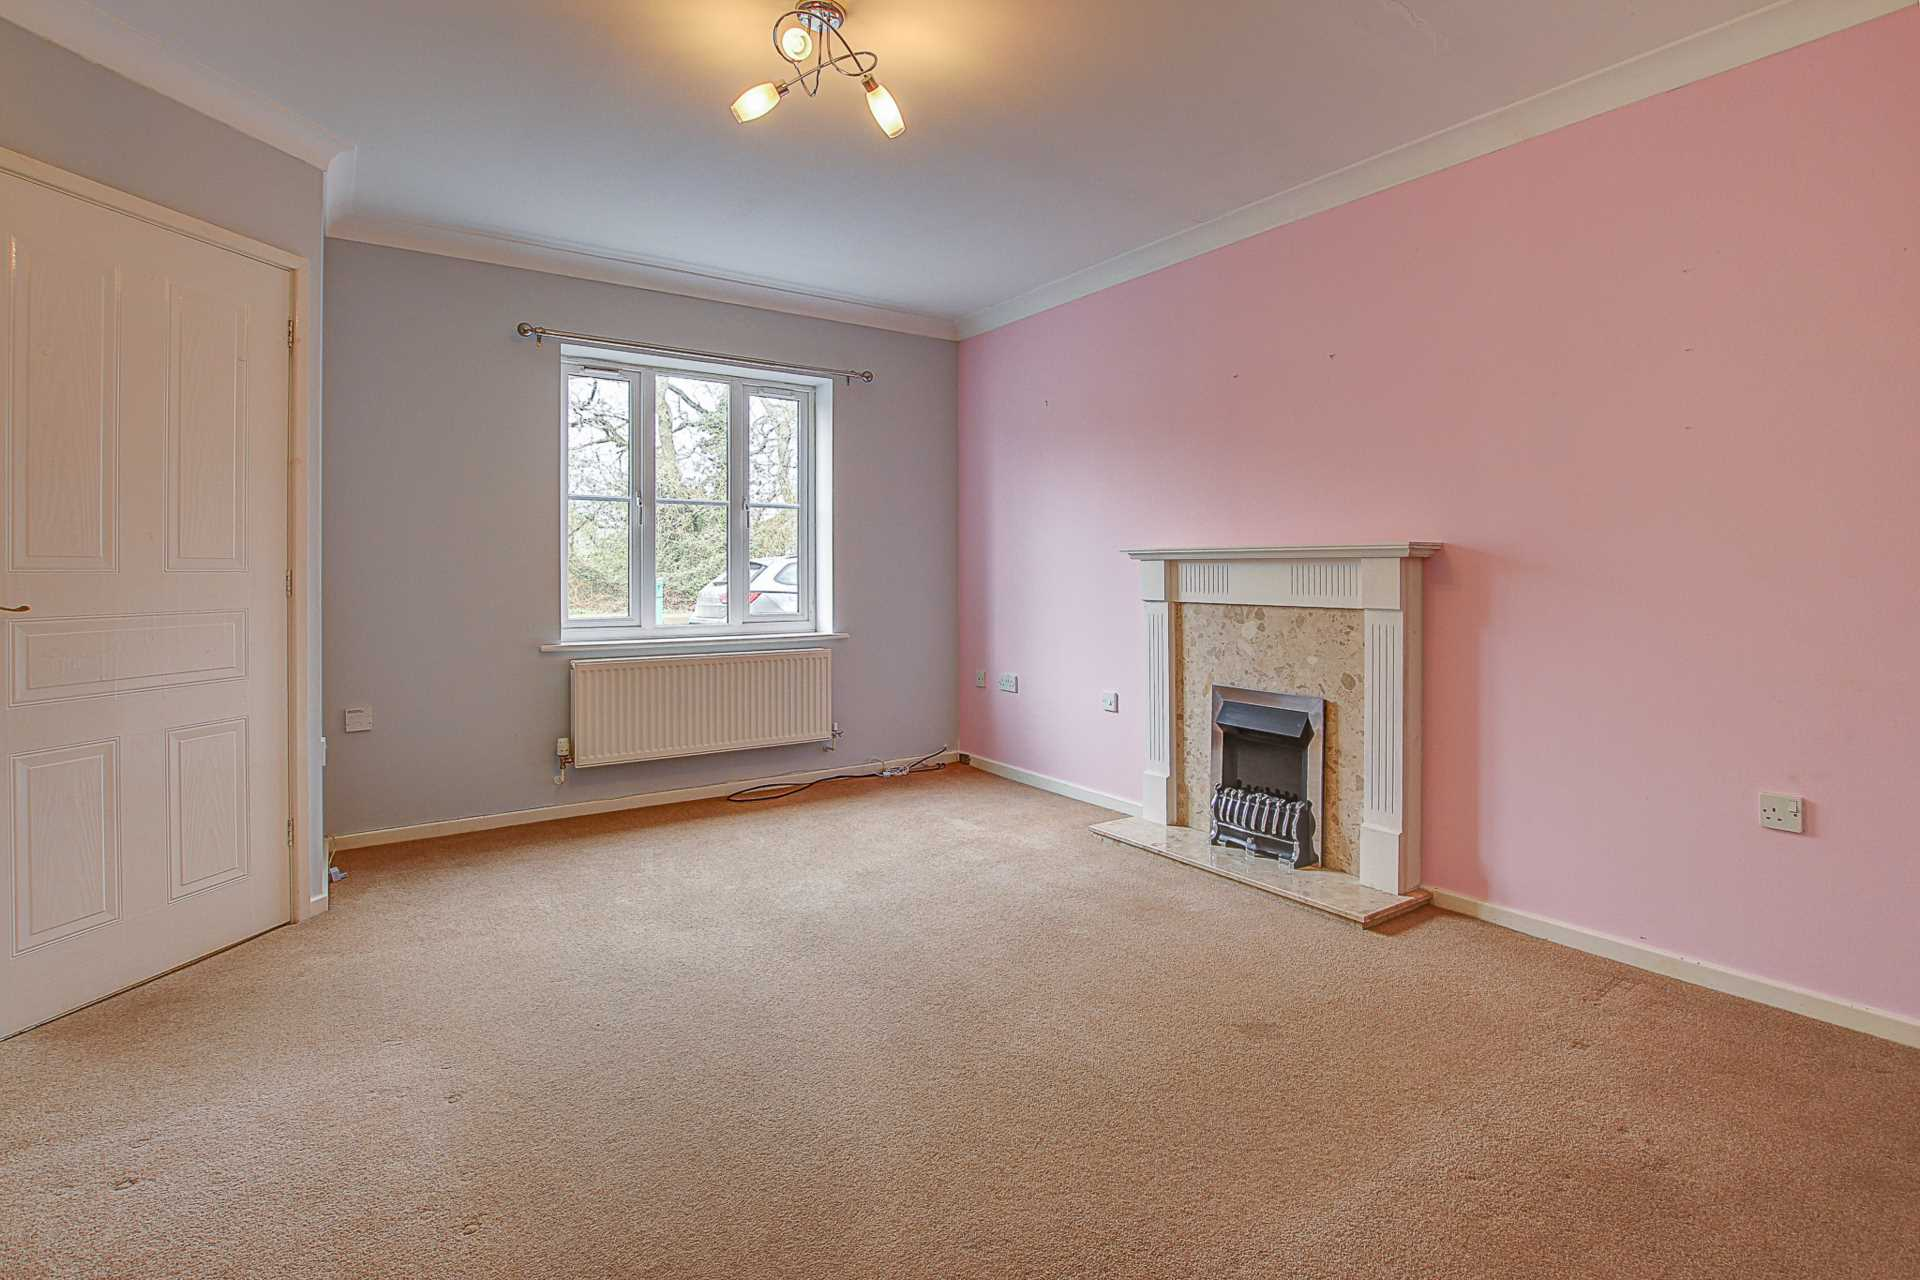 3 bed end of terrace house to rent in Chivrick Close, Sturminster Newton  - Property Image 2